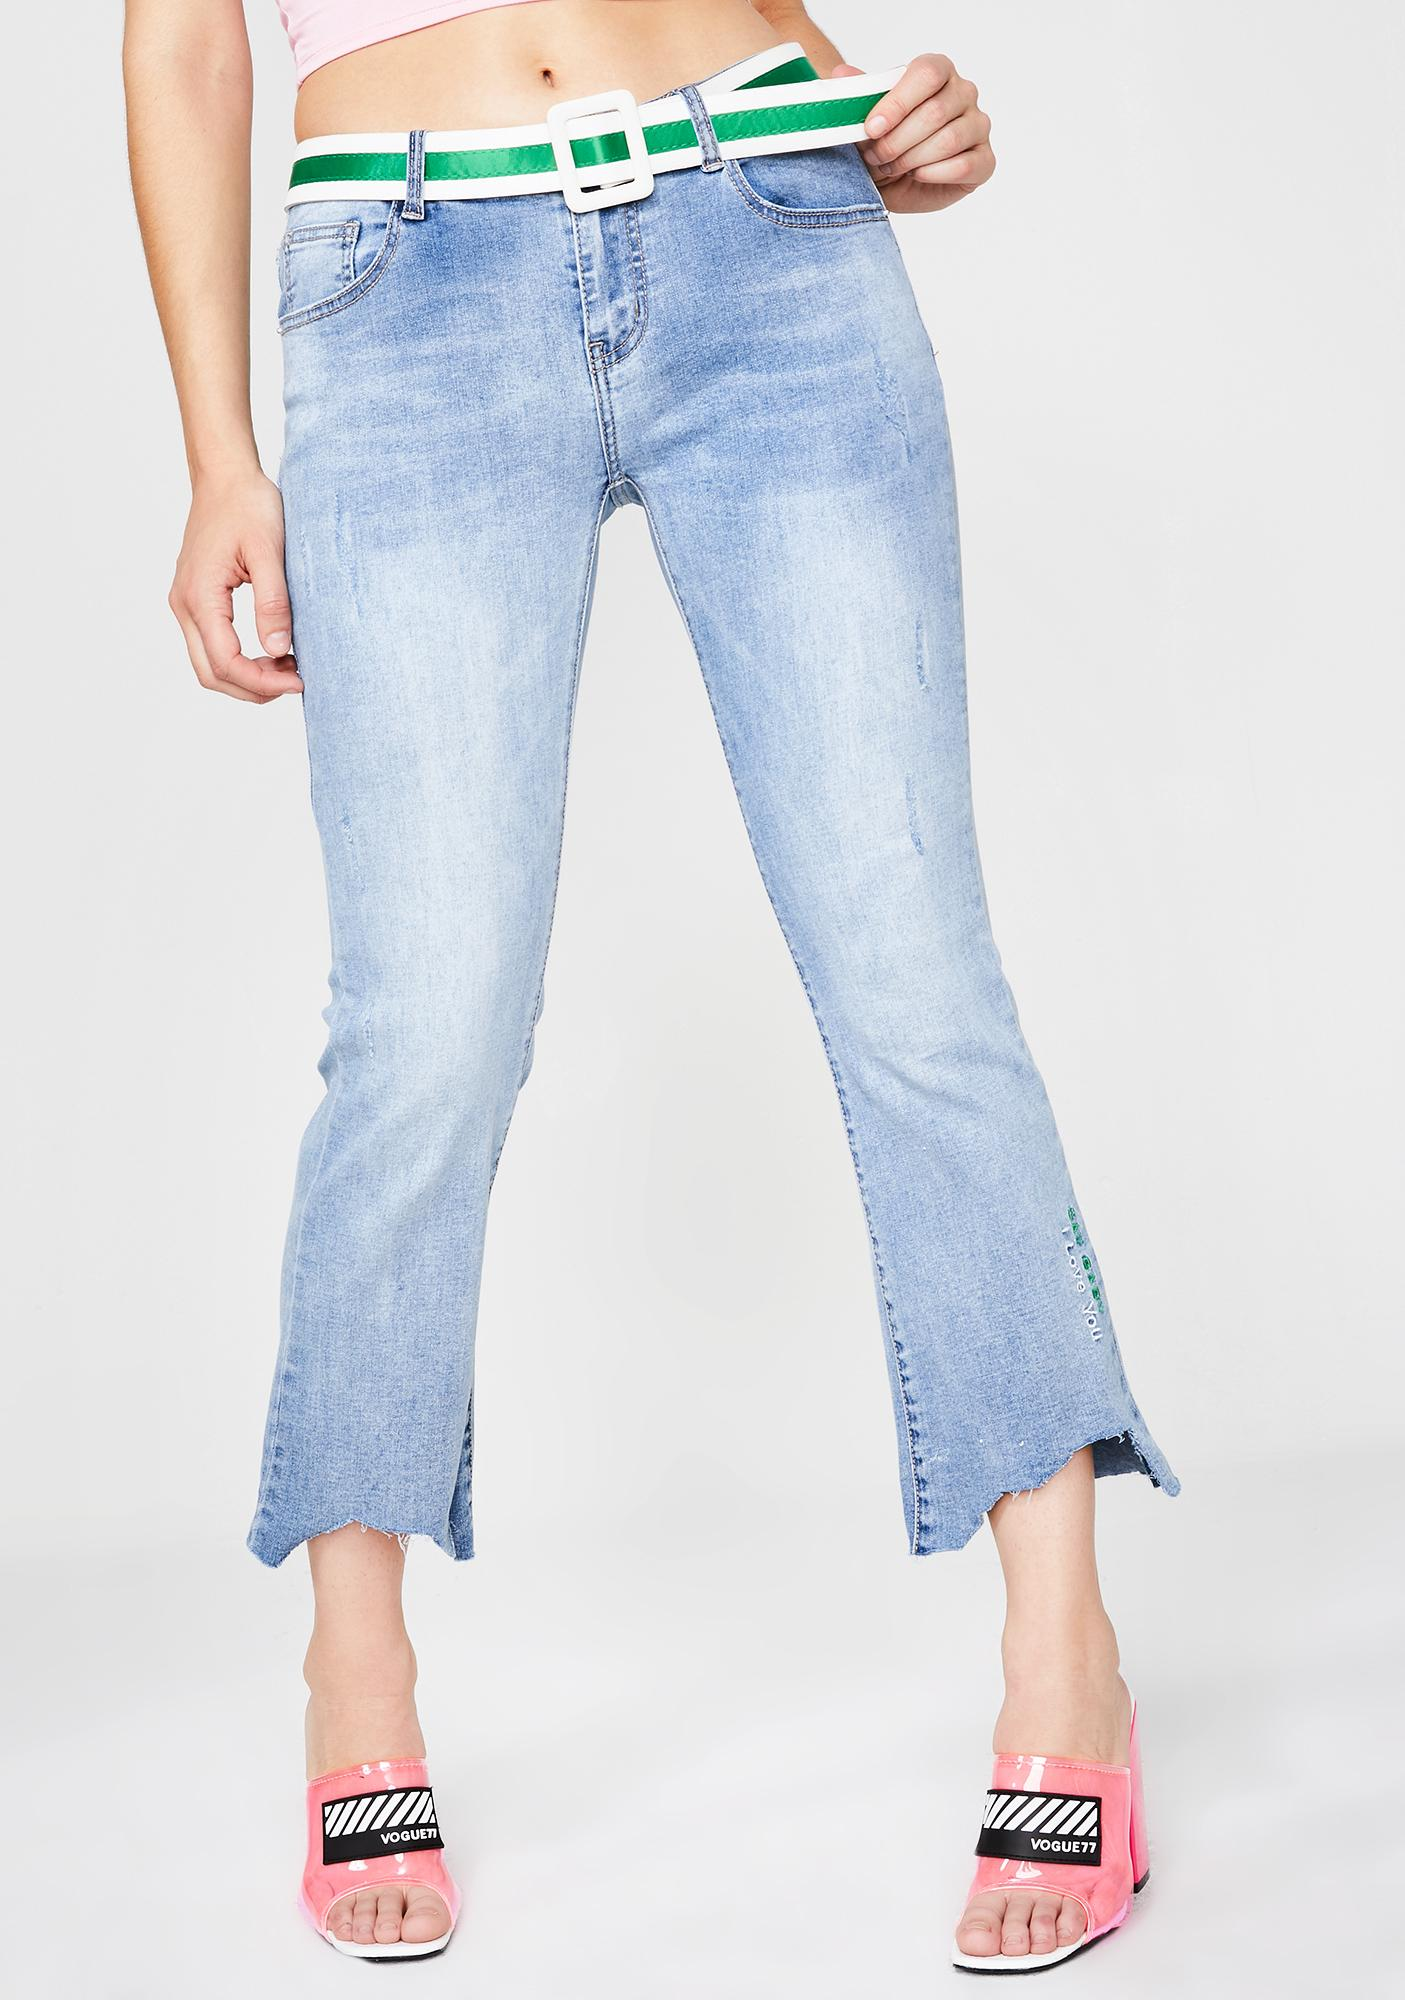 caebd158665 Molly Bracken Belted Jeans | Dolls Kill